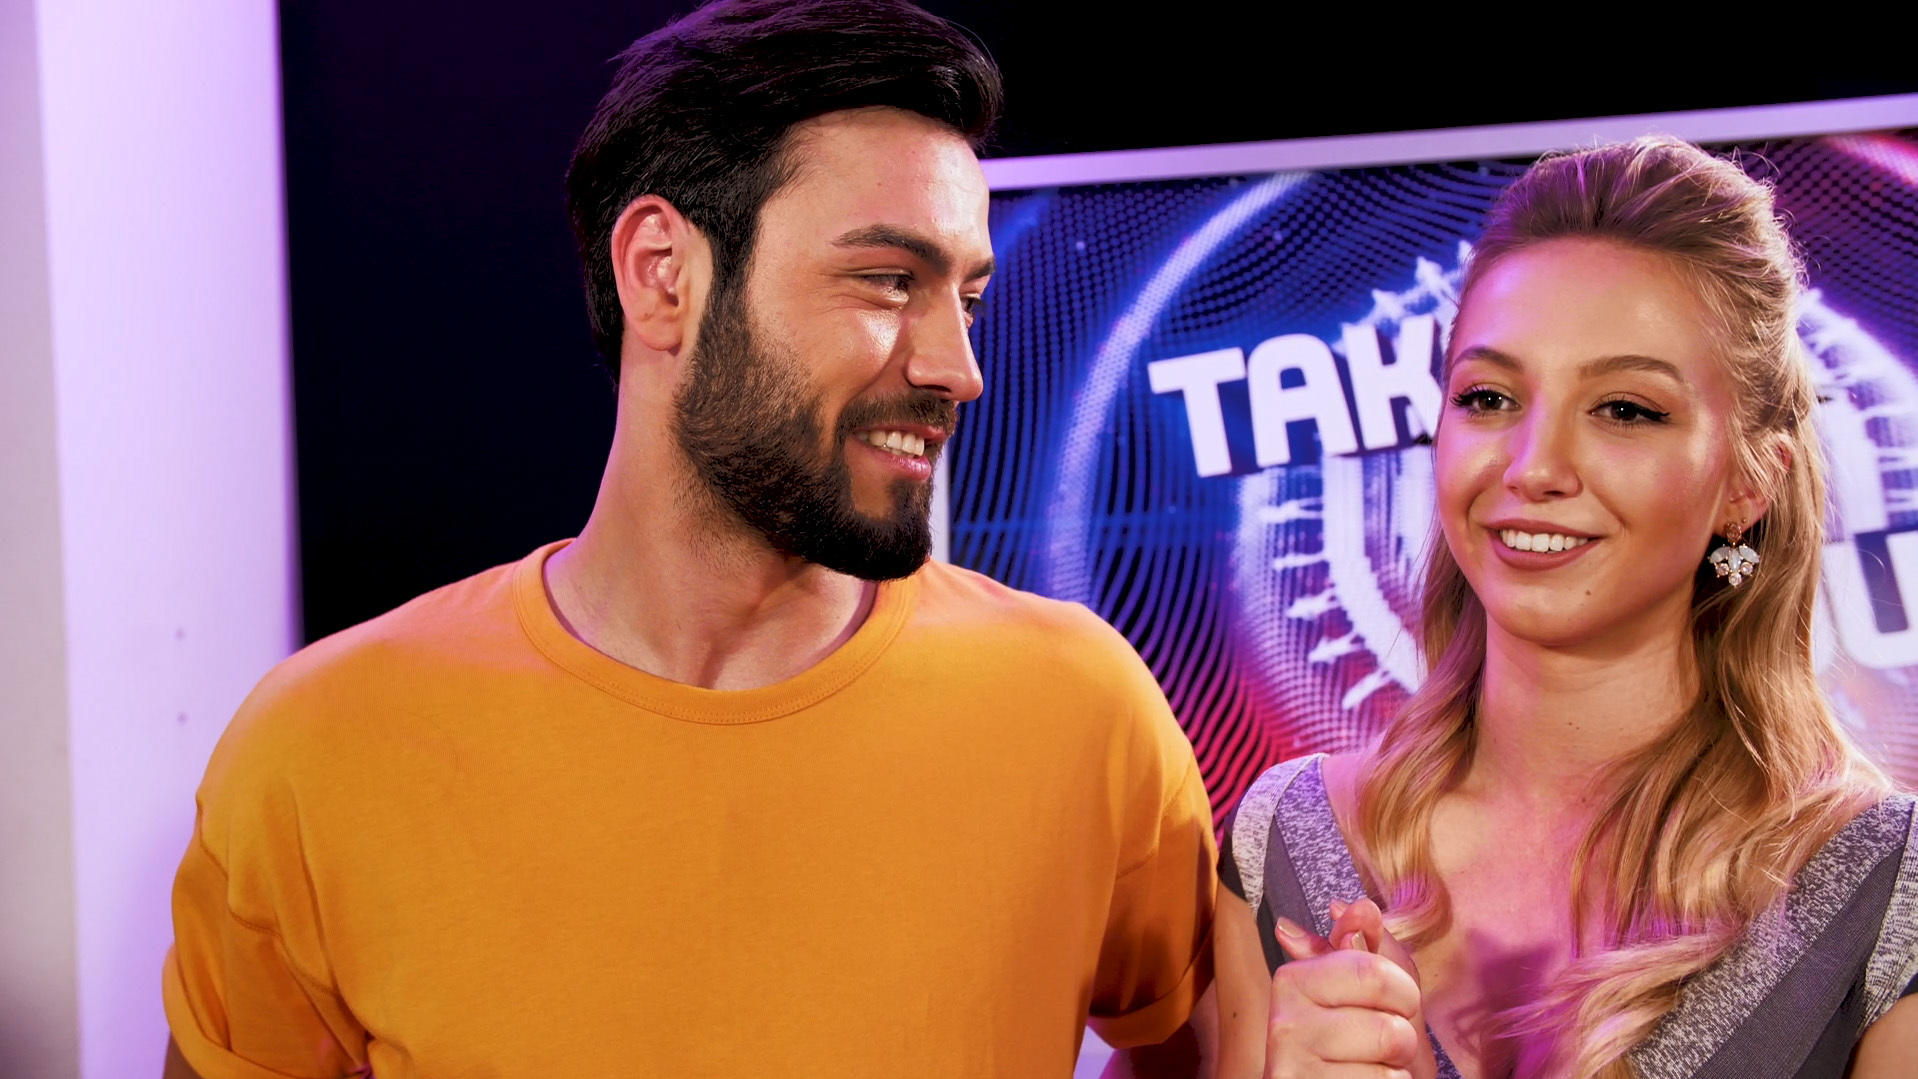 Take Me Out 2018 Hut Ab Mit Mut Und Charme Erobert Alicia Ihren